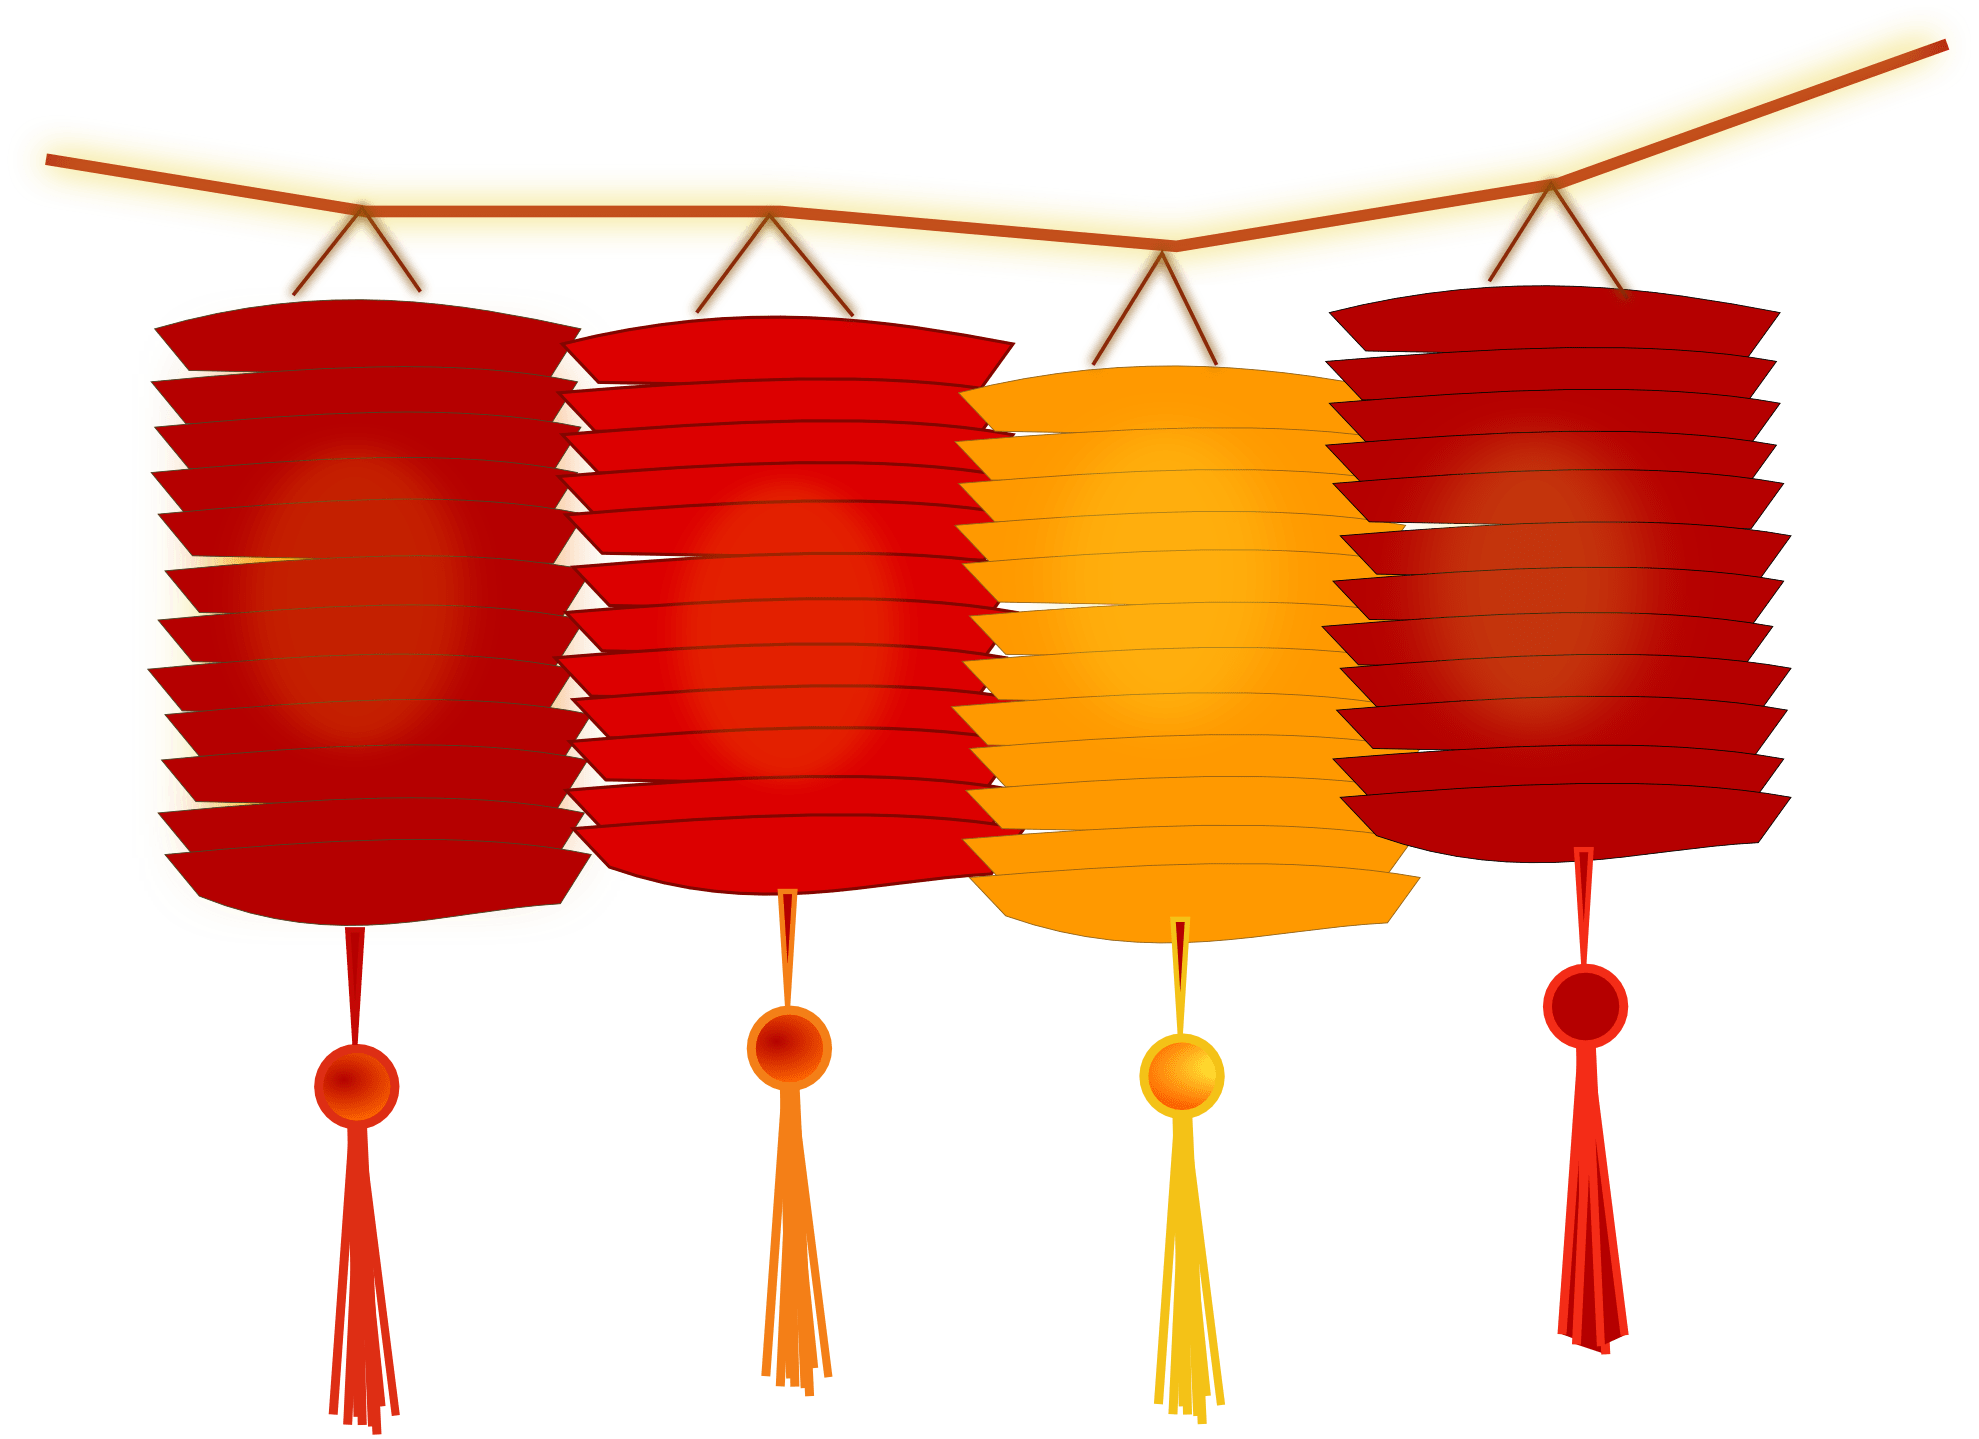 lanterns for chinese new year transparent png stickpng rh stickpng com chinese new year clipart free chinese new year clipart free